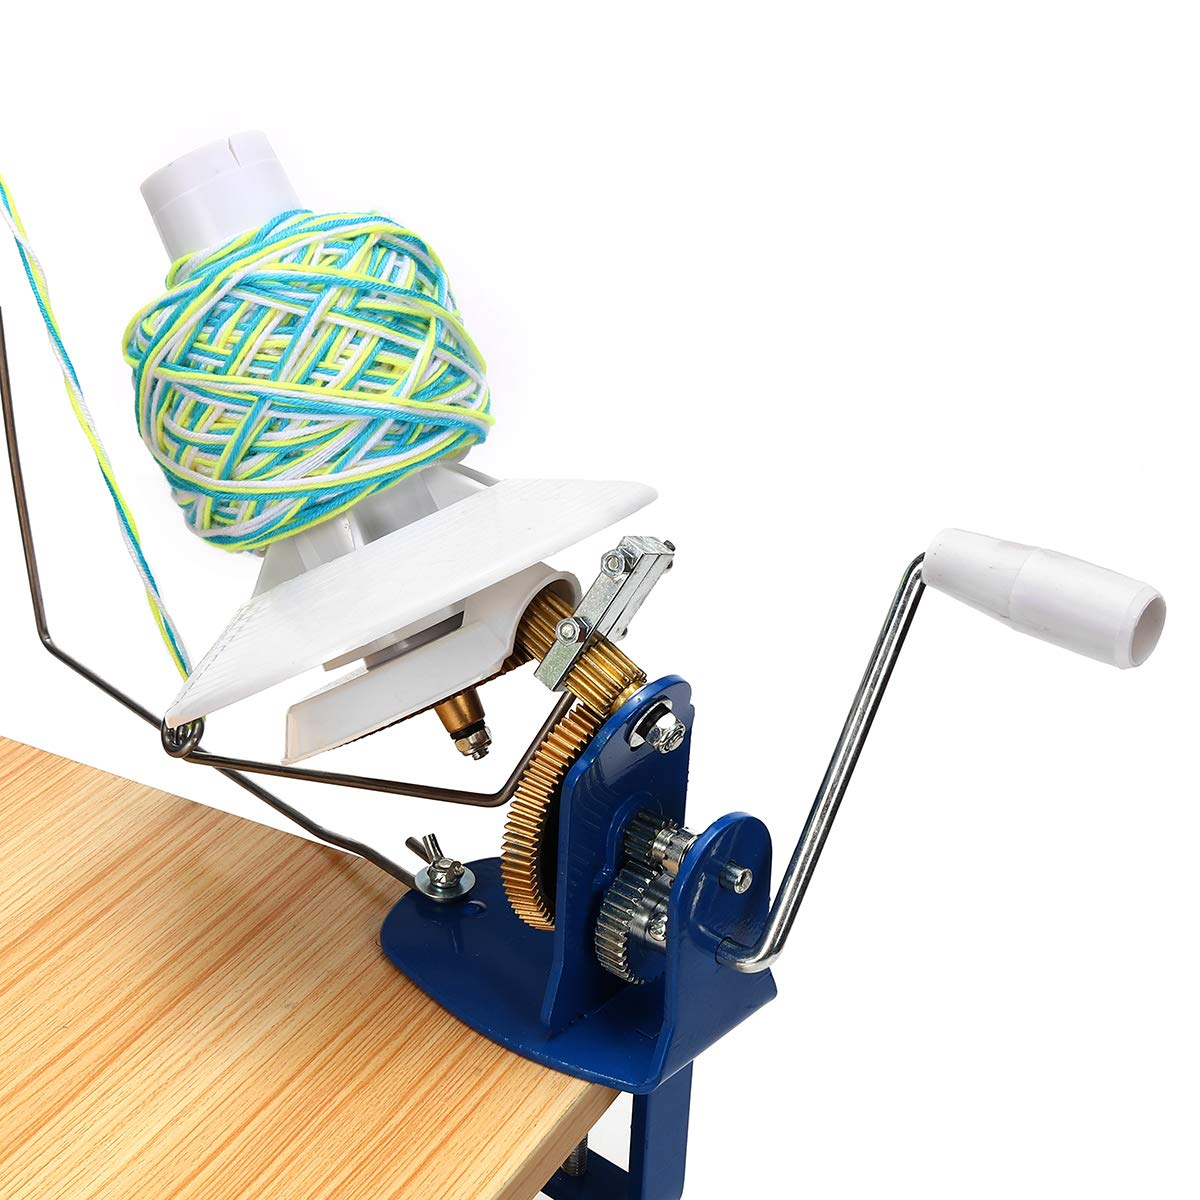 10 Ounce Practical Heavy Needlecraft Metal Yarn Fiber Wool Ball Winder Hand Operated Coil winder For Sewing Accessories Tools